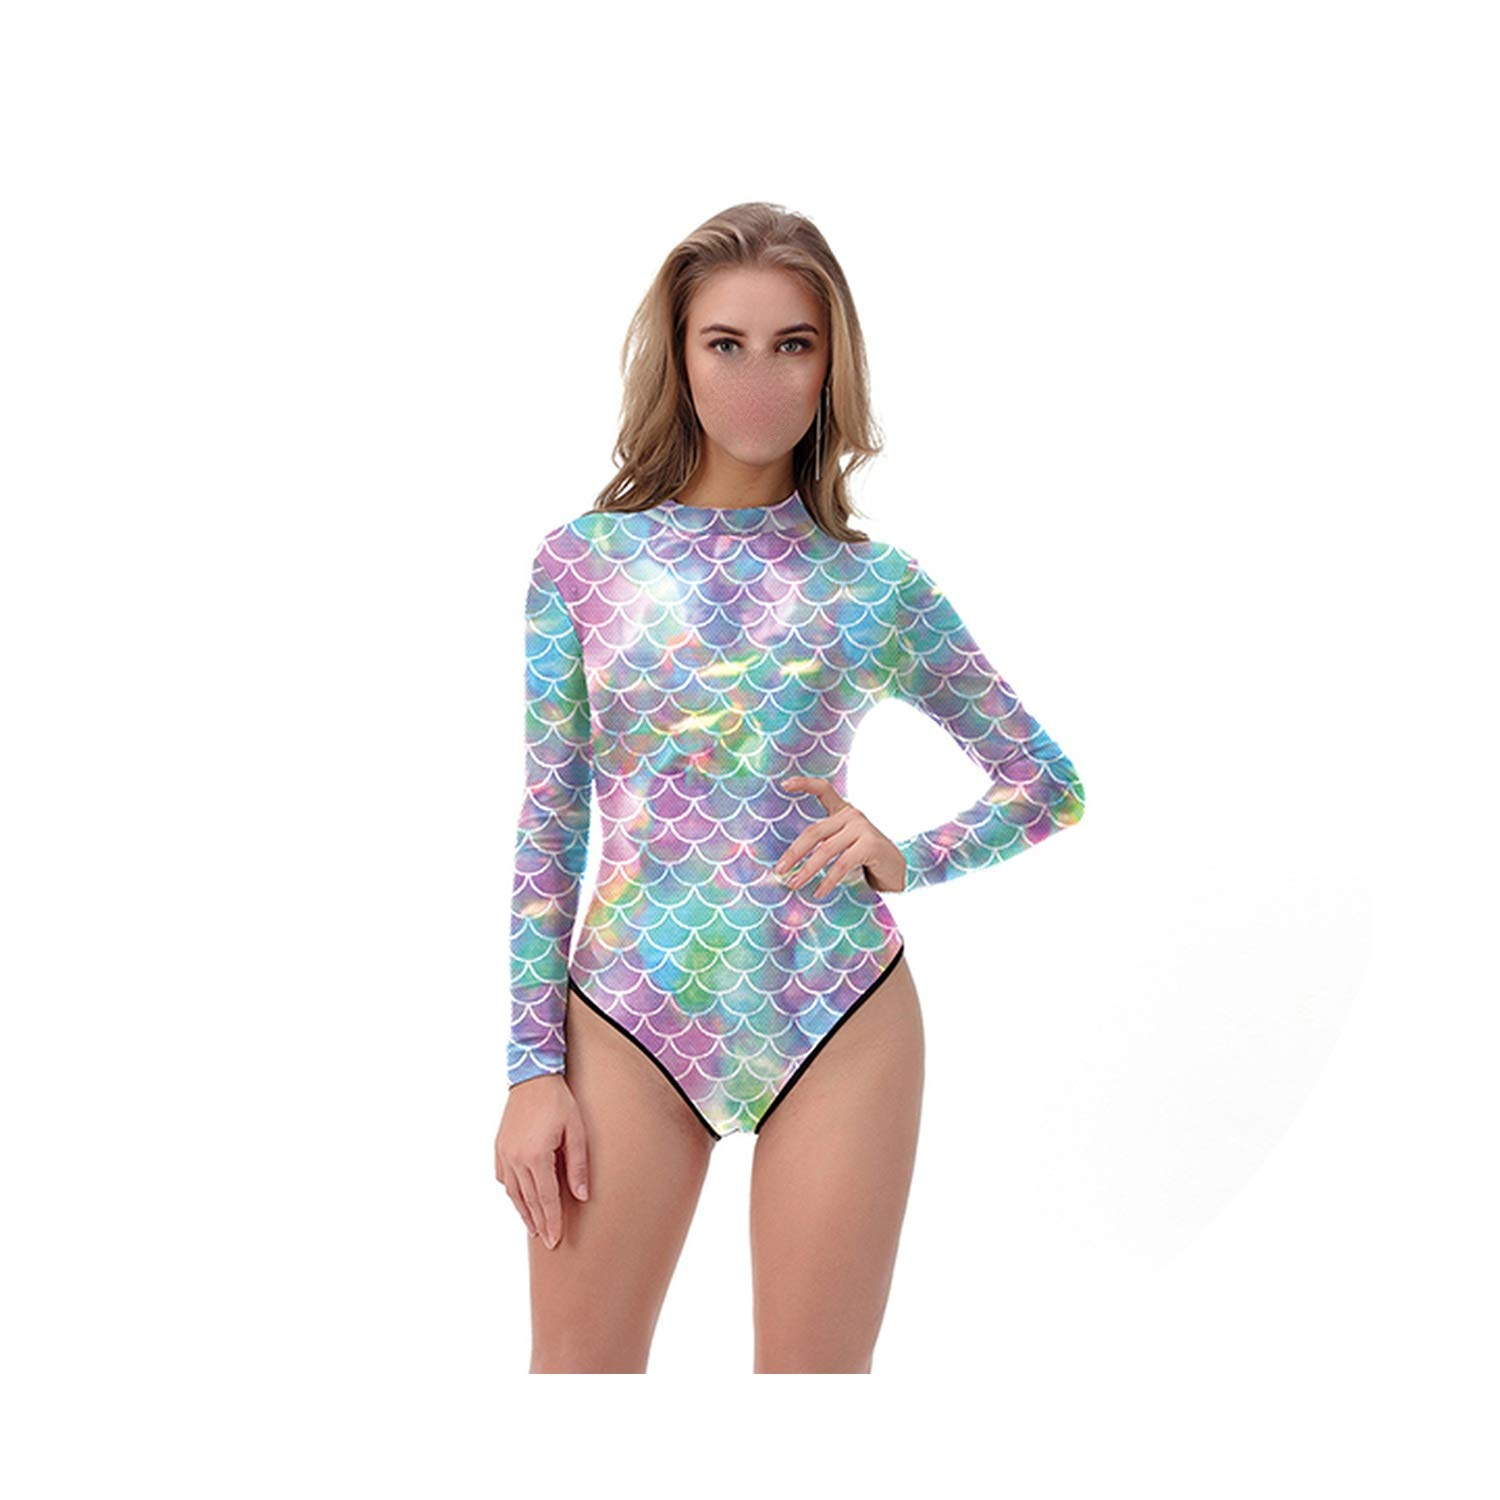 Holiday-Online-Store Swimsuit Women Colorful Mermaid One Piece Swimsuit Long Sleeve Zippper Printed Swimsuit